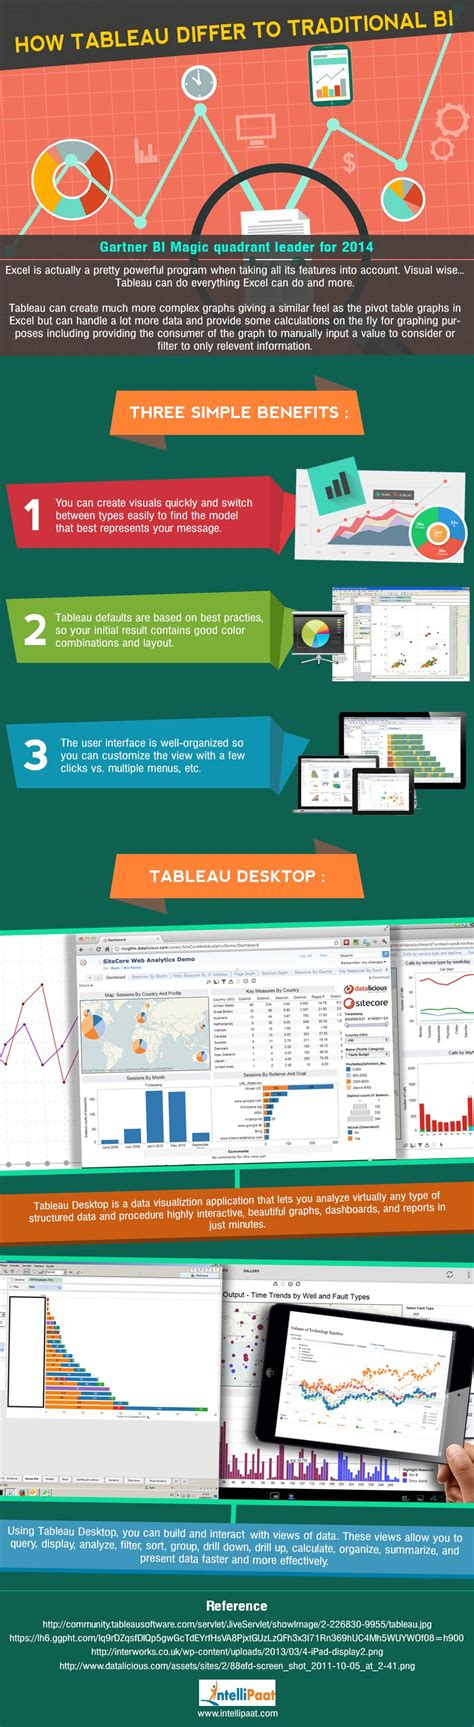 tableau tutorial beginner tableau tutorial for beginners tableau tutorial pdf